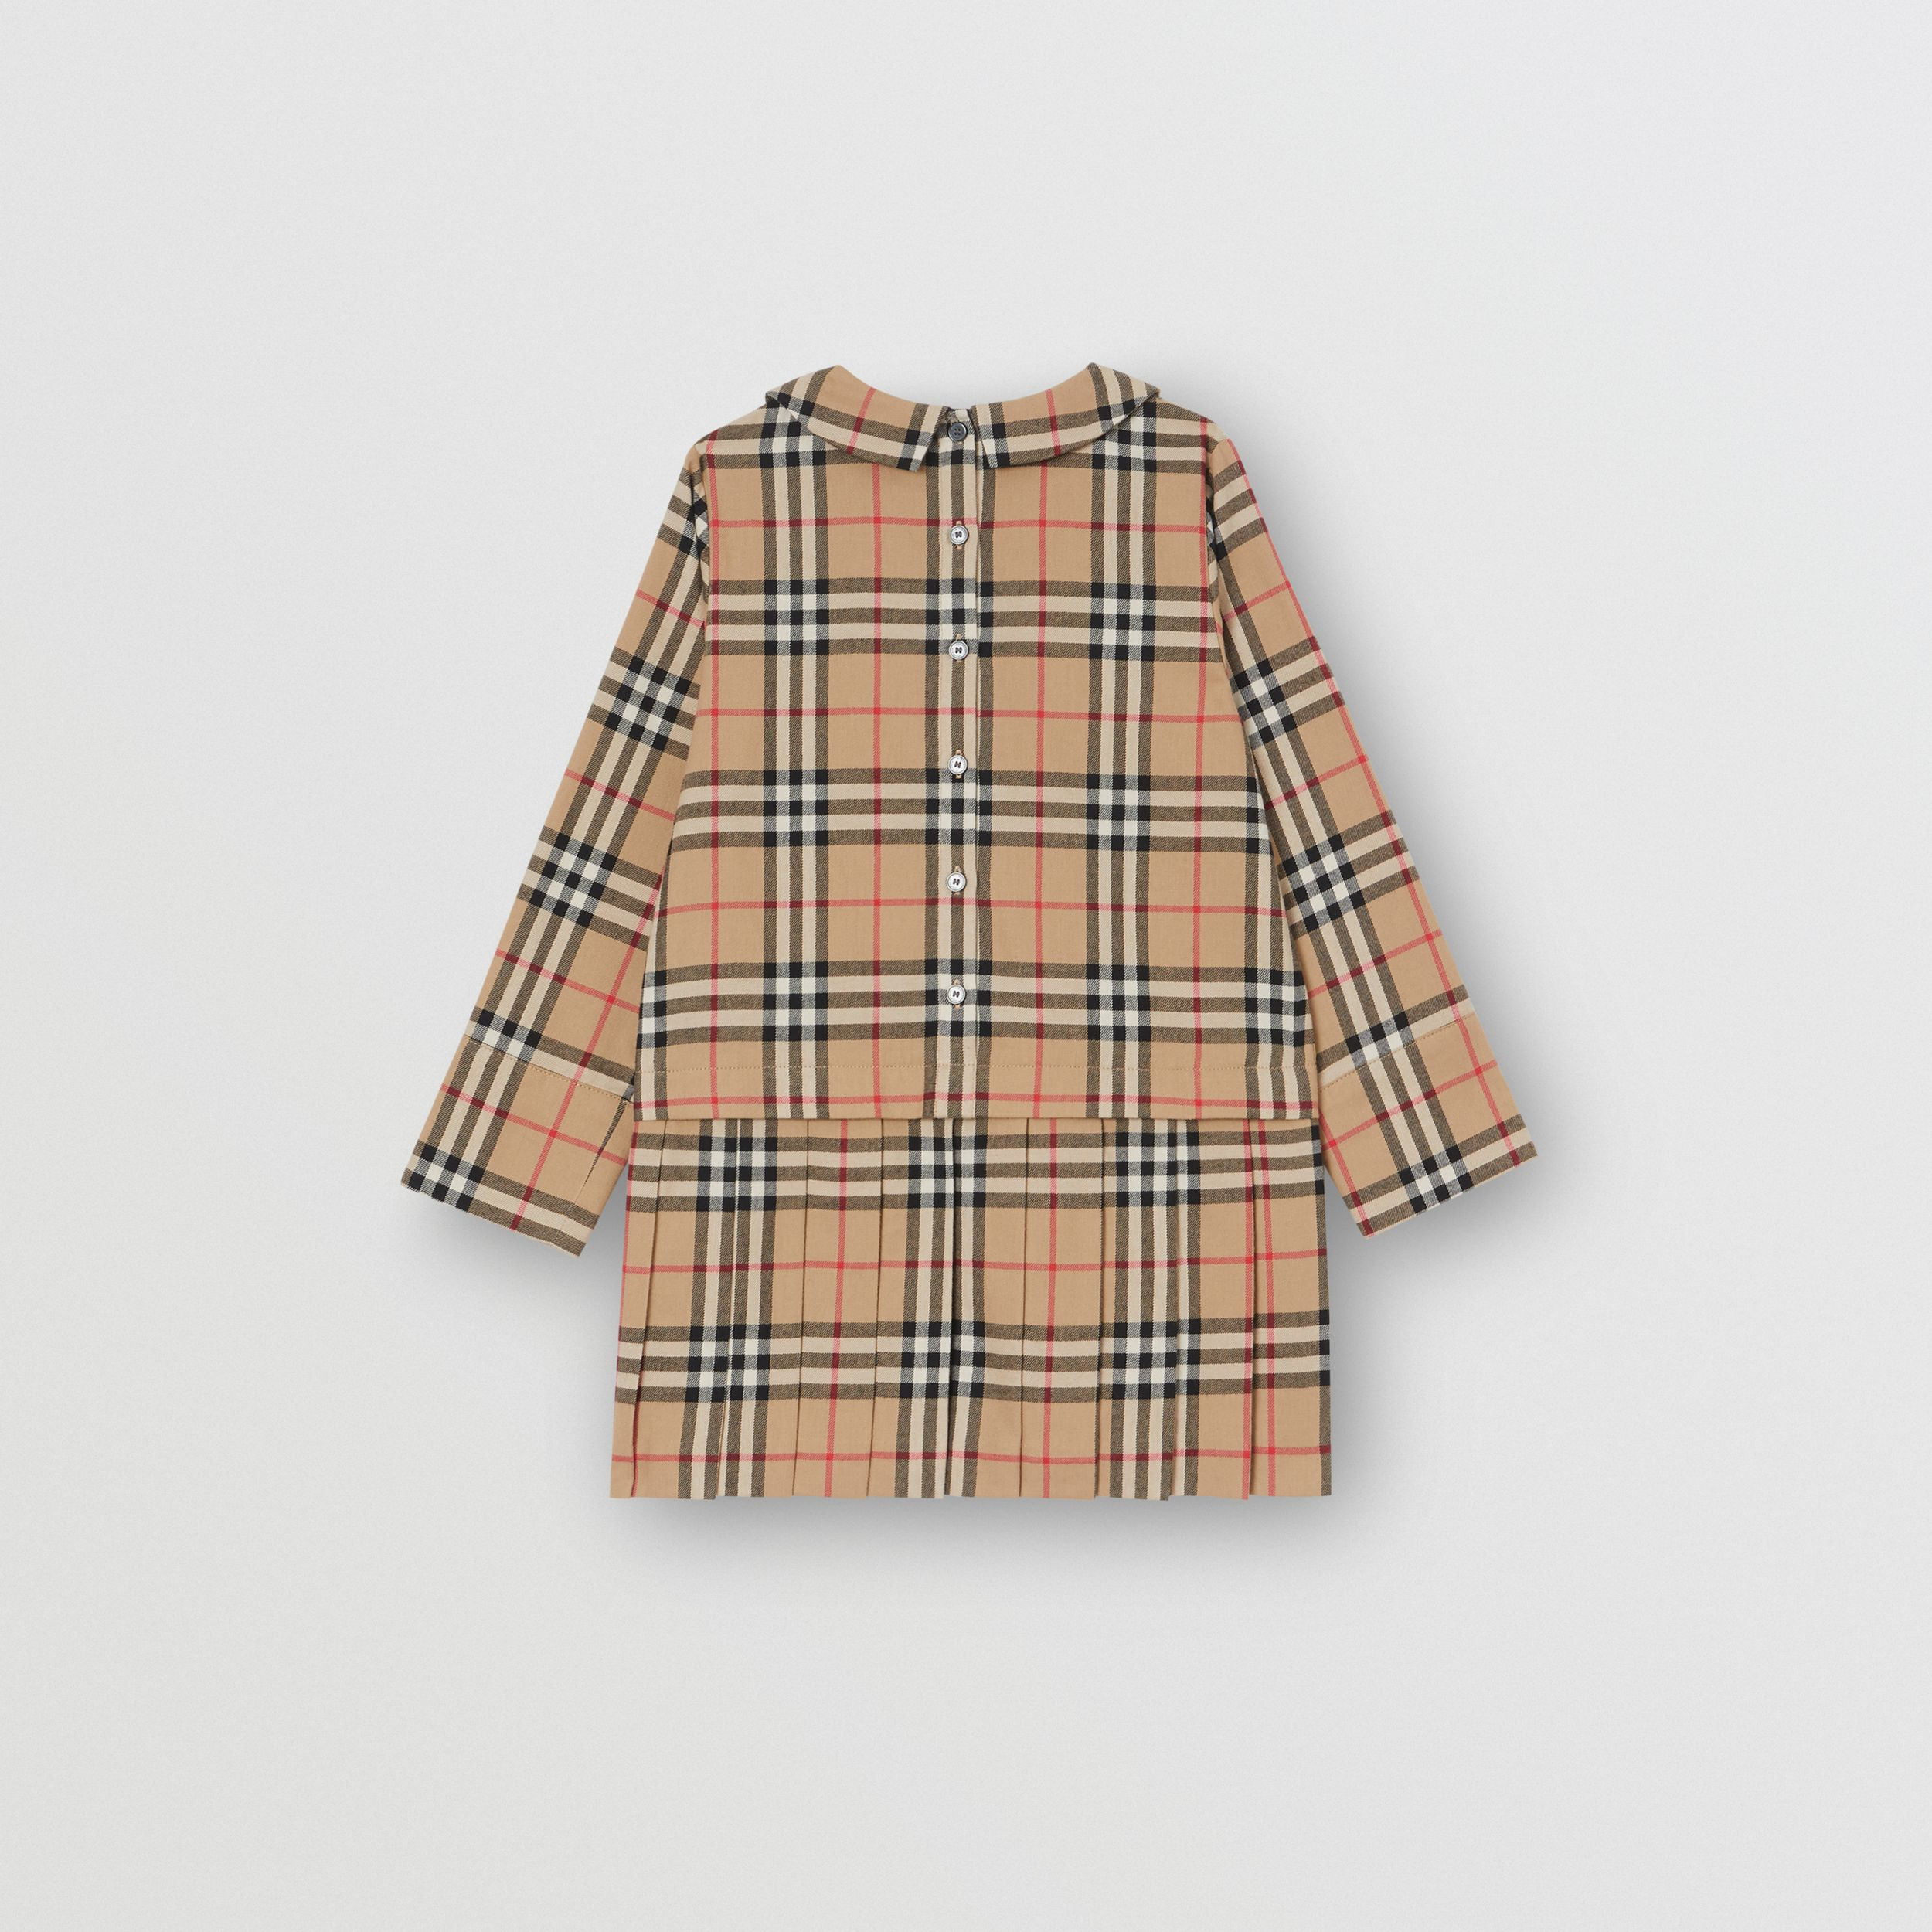 Peter Pan Collar Vintage Check Cotton Dress in Archive Beige | Burberry - 4